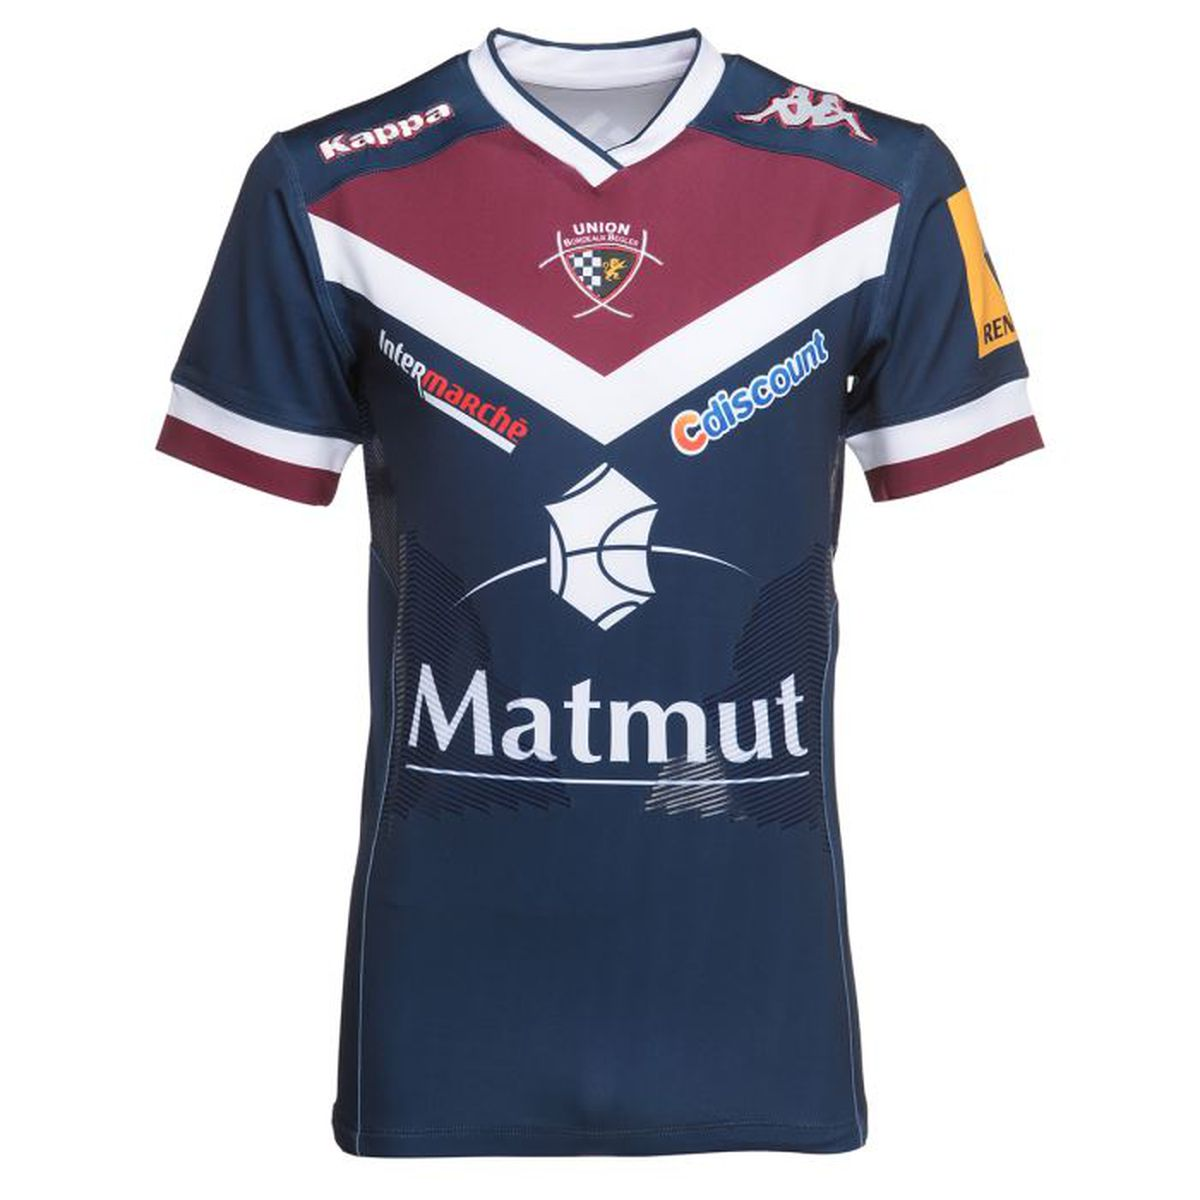 Pas Cher Maillot Homme Prix Kappa Cdiscount Ubb wqS0aXxI